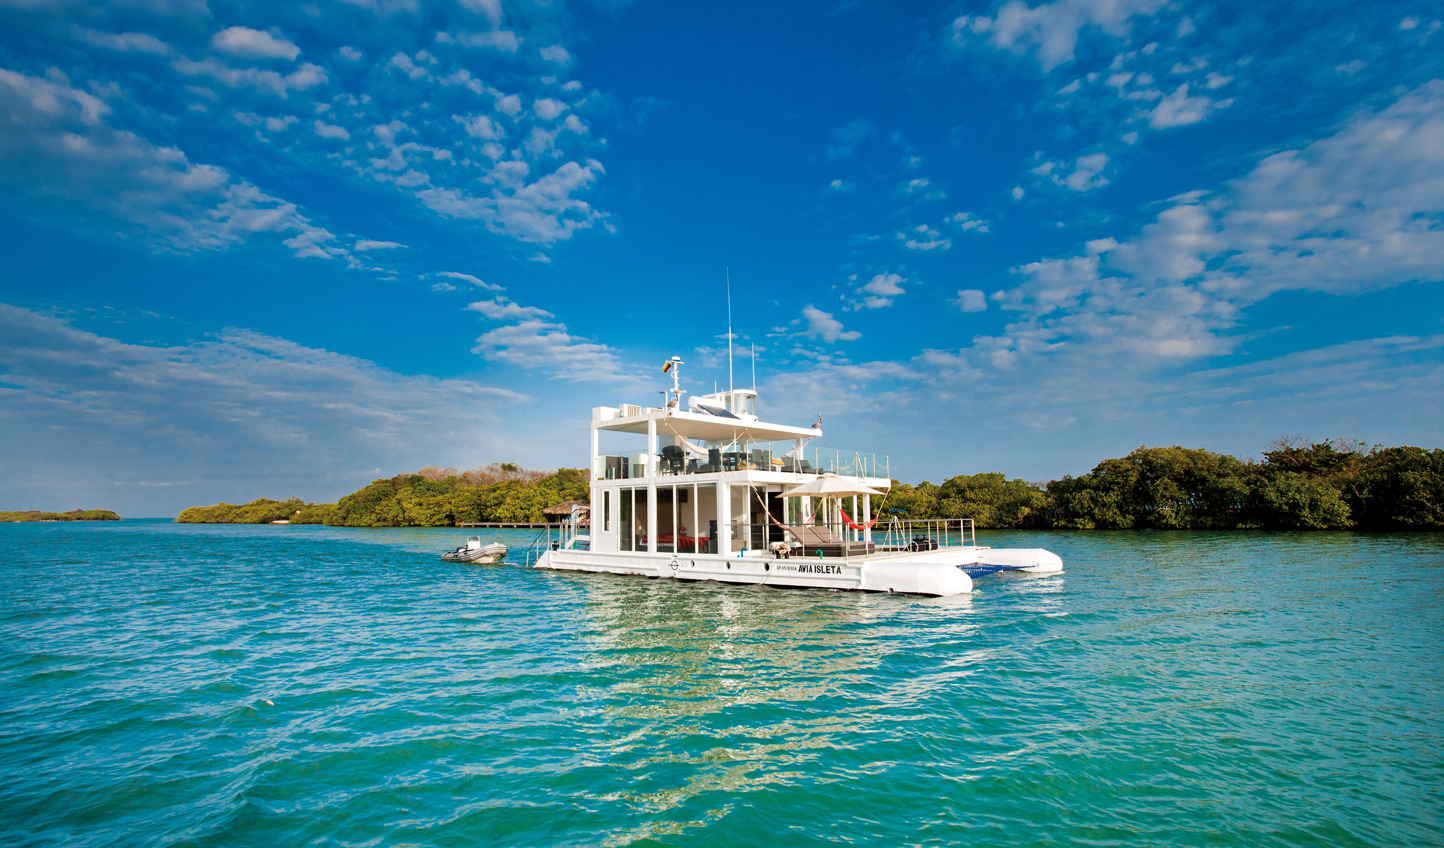 For something a little different, spend a night or two onboard Casa Navegante